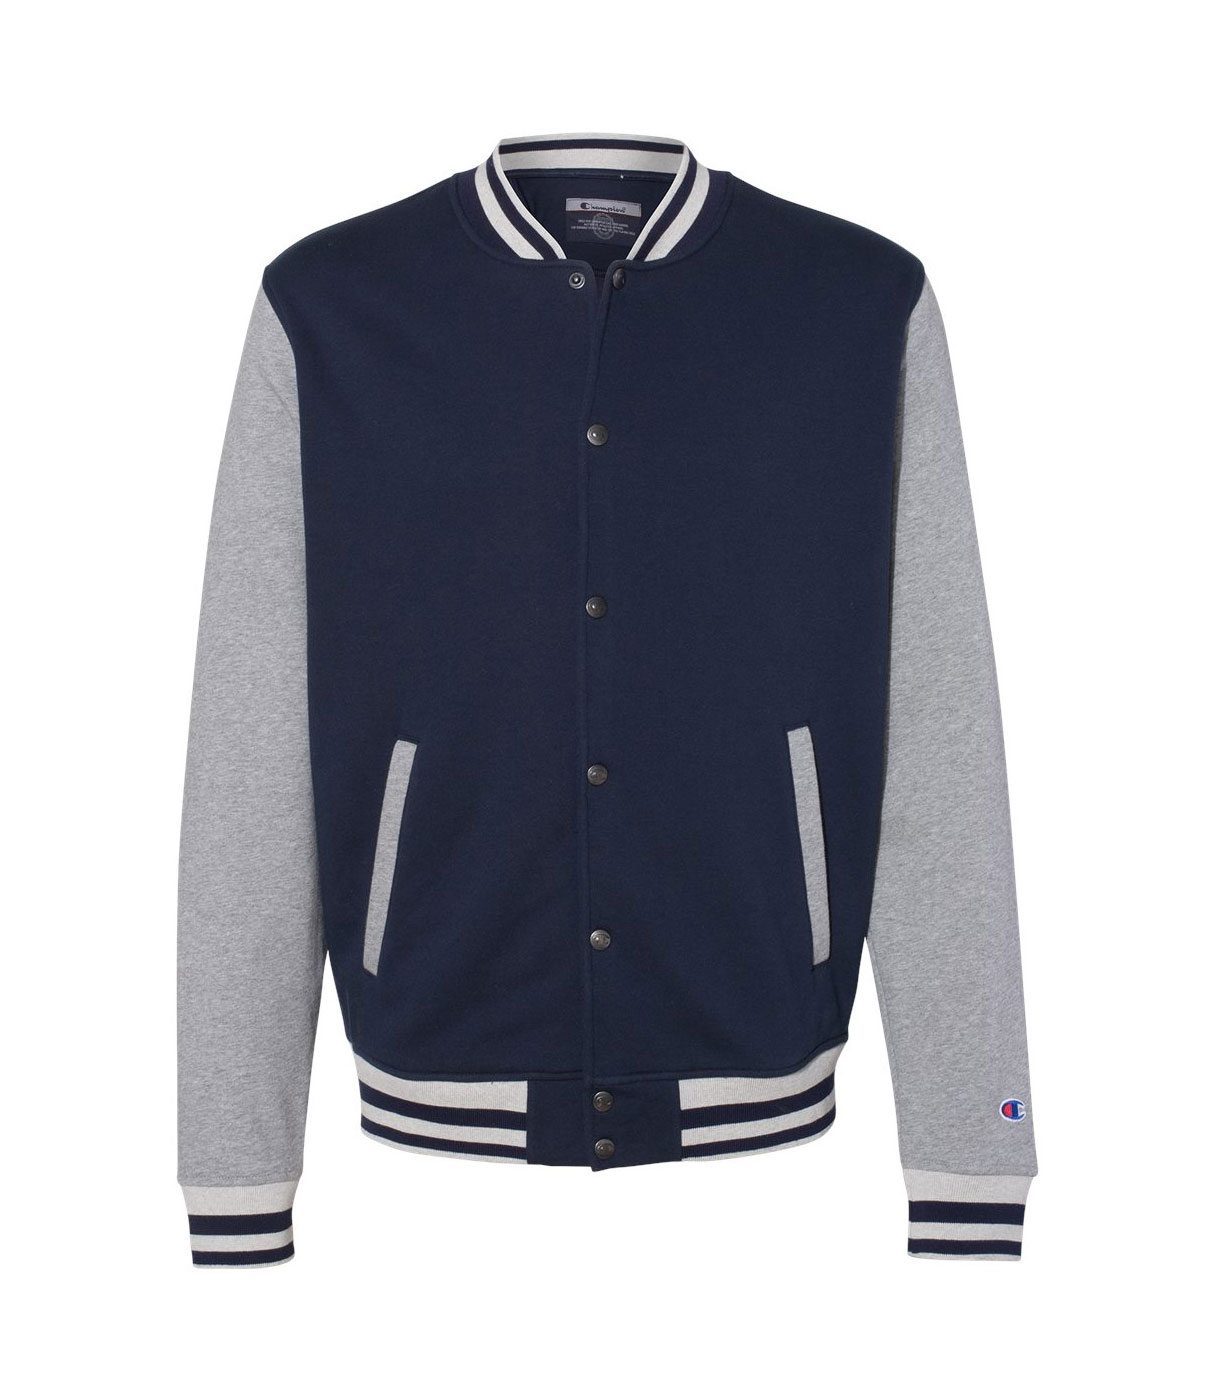 Champion Unisex Bomber Jacket